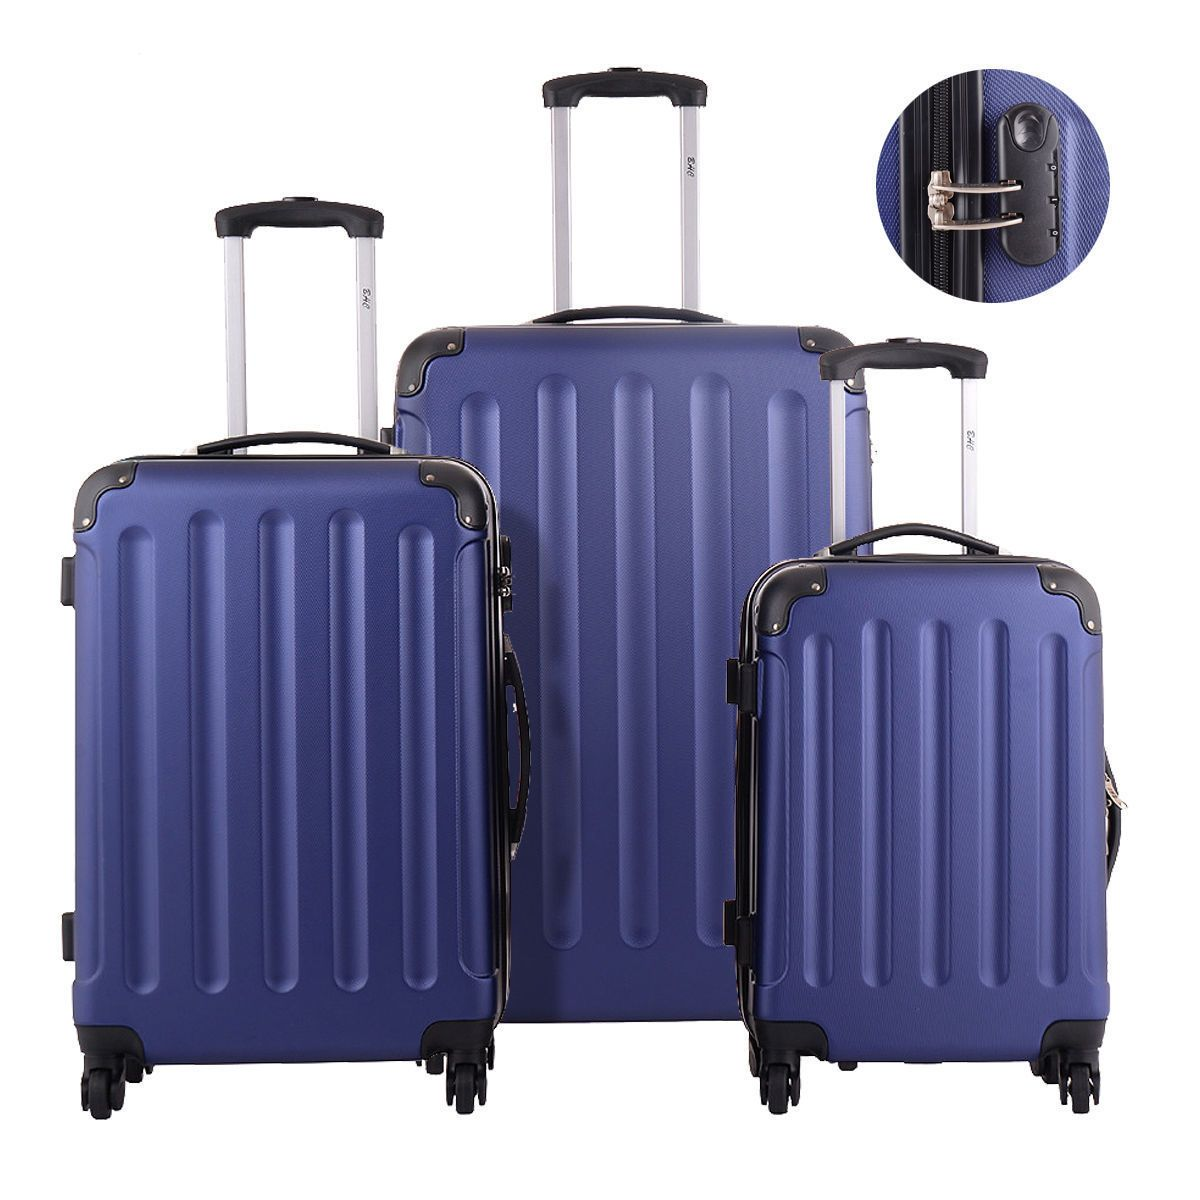 Bags Trolley Luggage By Tatonka Bhc 3pcs Luggage Bag Carry On Set Trolley Suitcase Travel